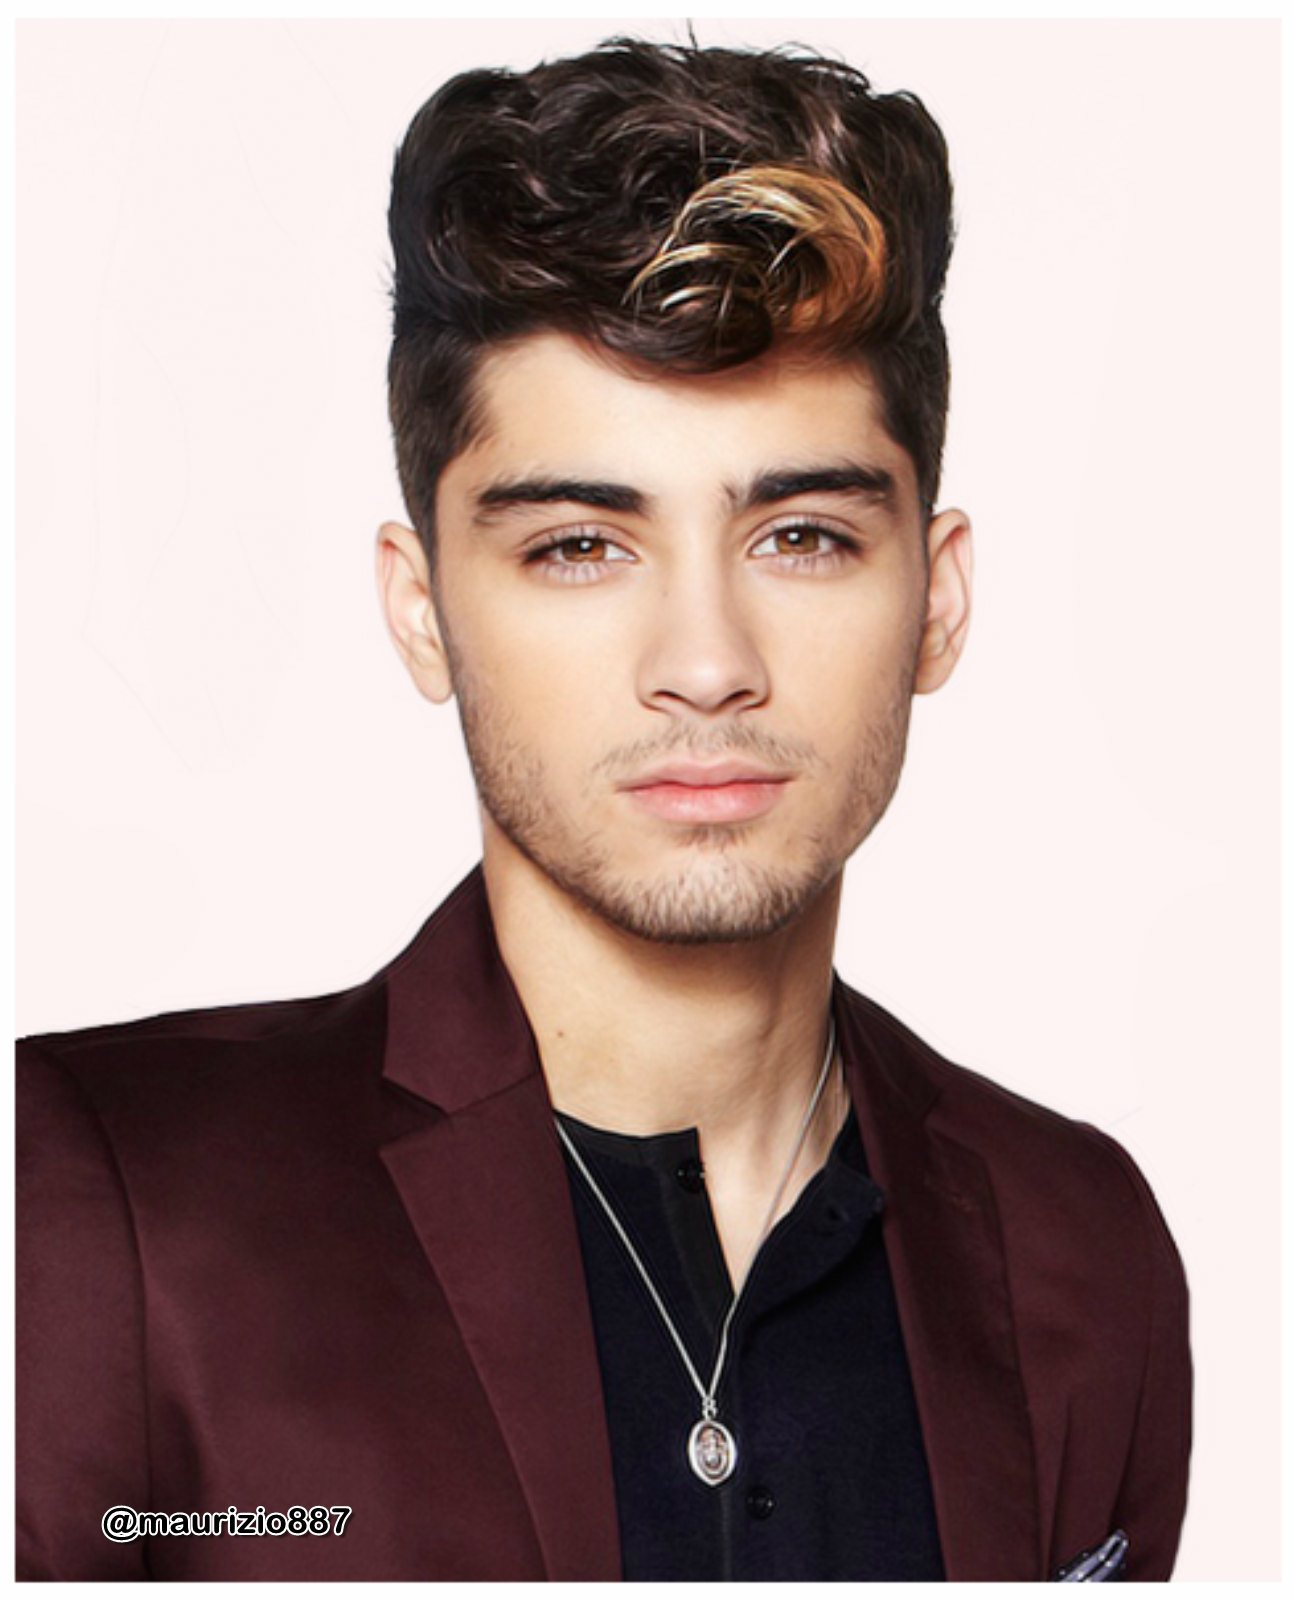 Zayn Malik 2013 Photoshoot One Direction Blog: Za...